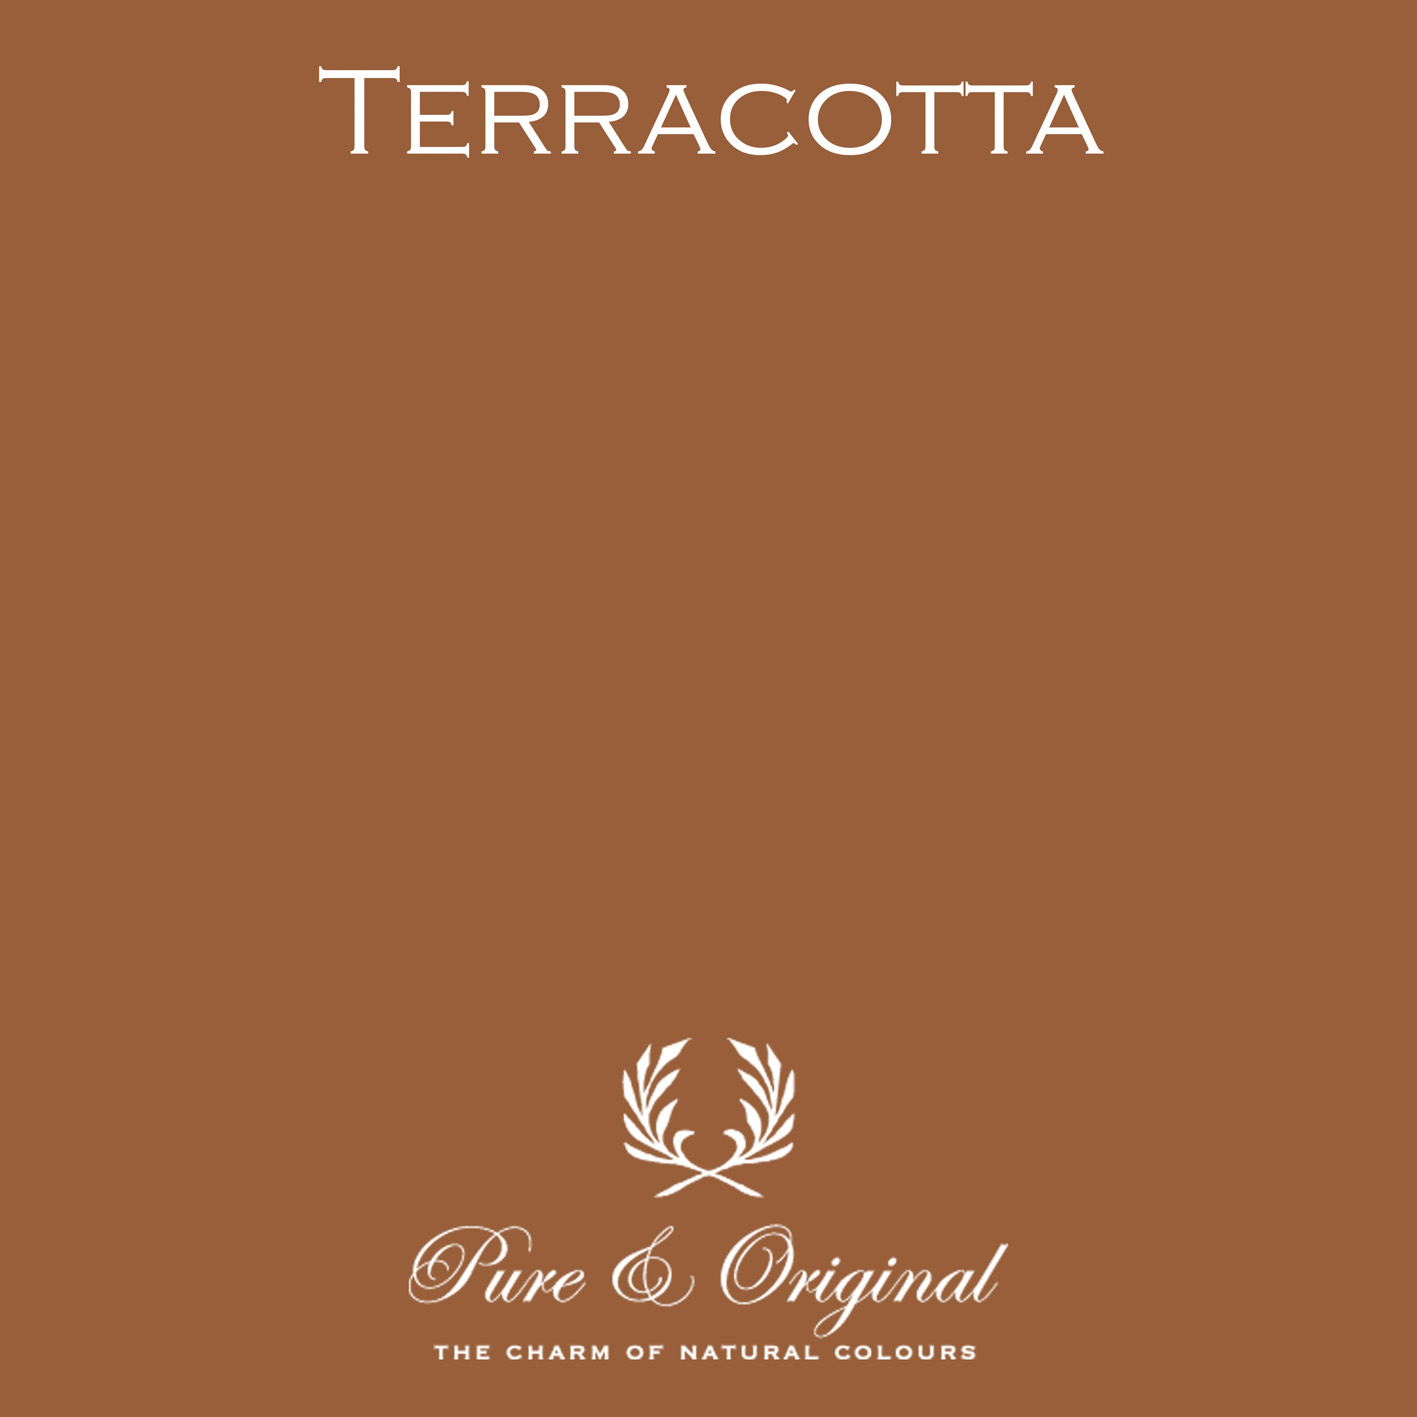 Terracotta Pure & Original